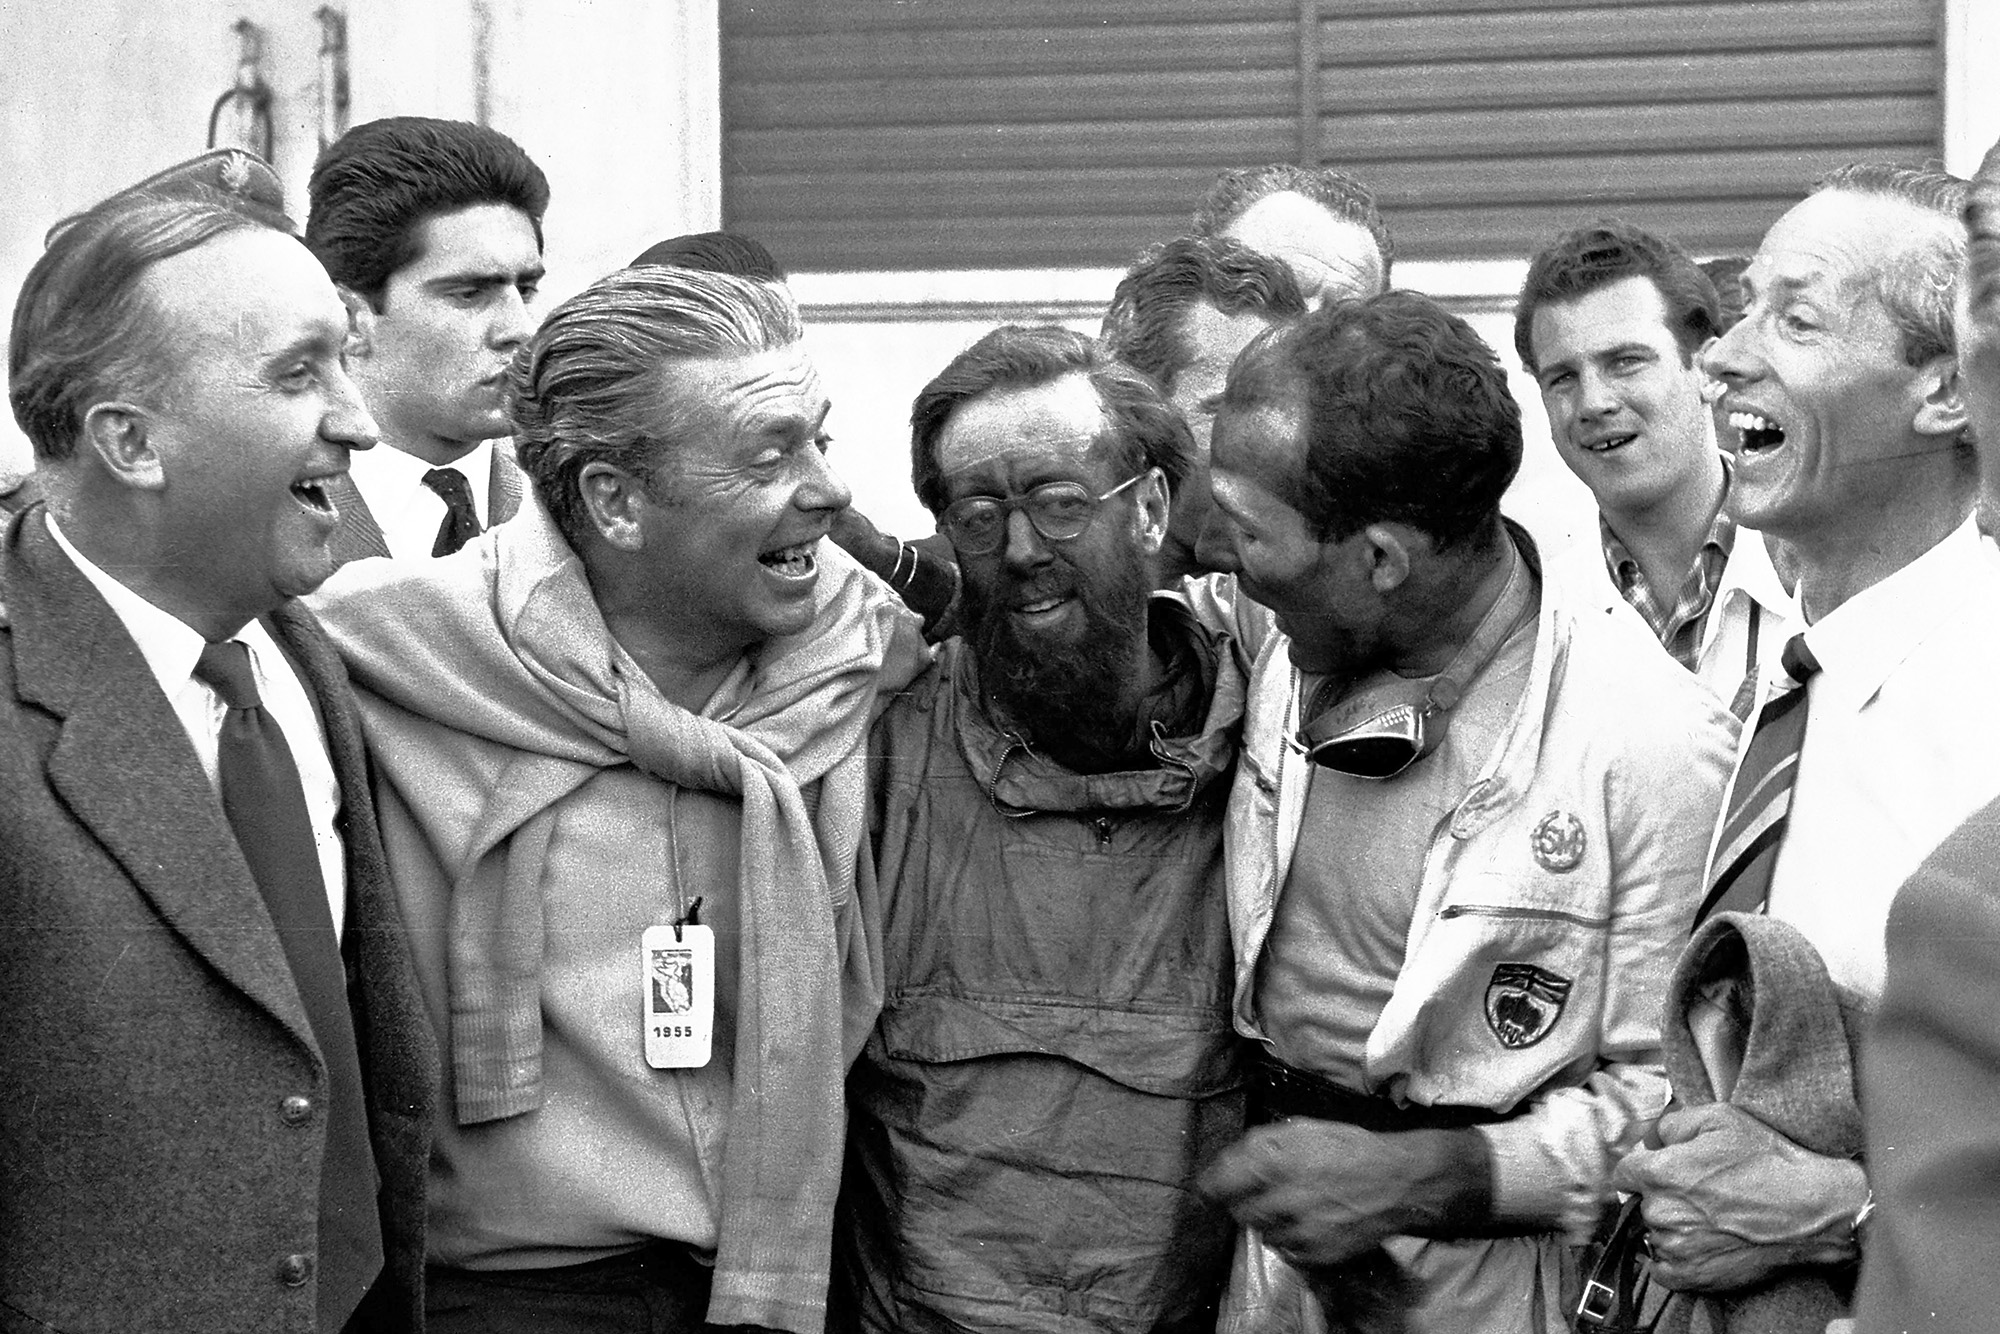 Stirling Moss and Denis Jenkinson celebrate winning the 1955 Mille Miglia Italy